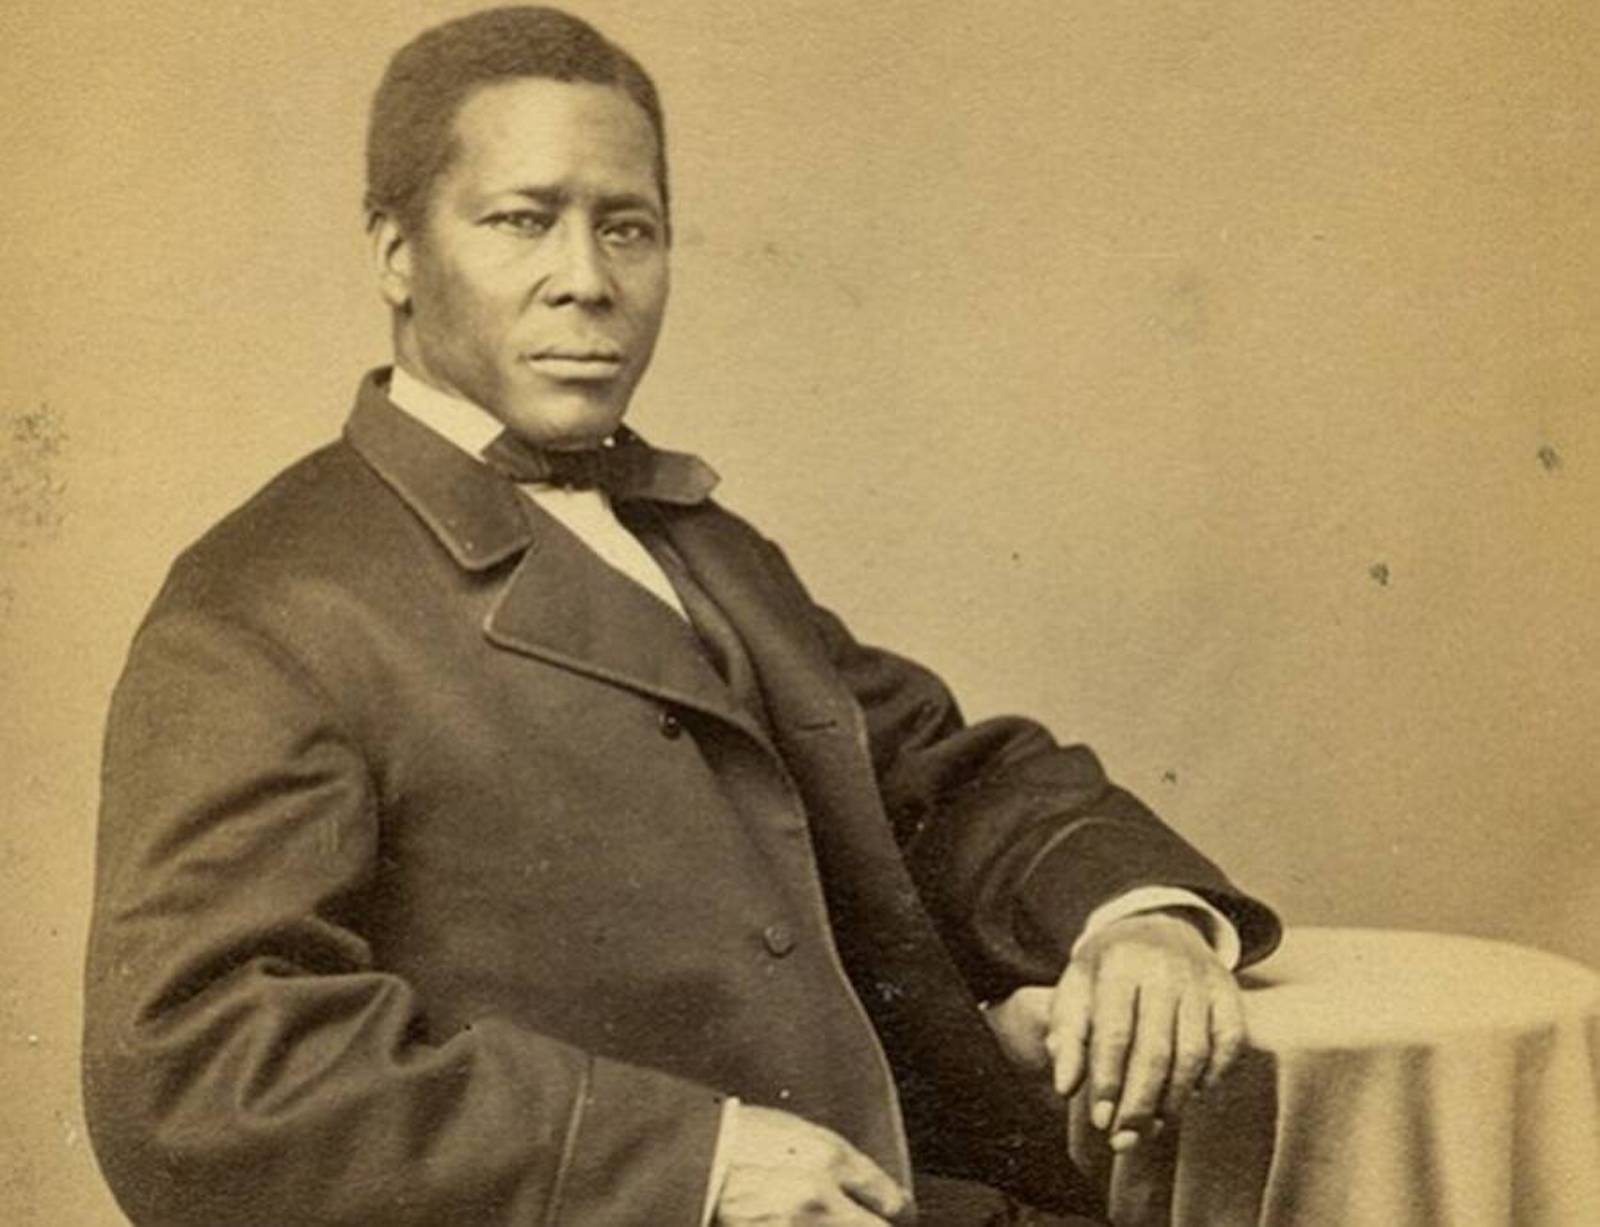 William Still, African American History, Black History, American History, U.S. History, Slavery, U.S. Slavery, KOLUMN Magazine, KOLUMN, KINDR'D Magazine, KINDR'D, Willoughby Avenue, Wriit,